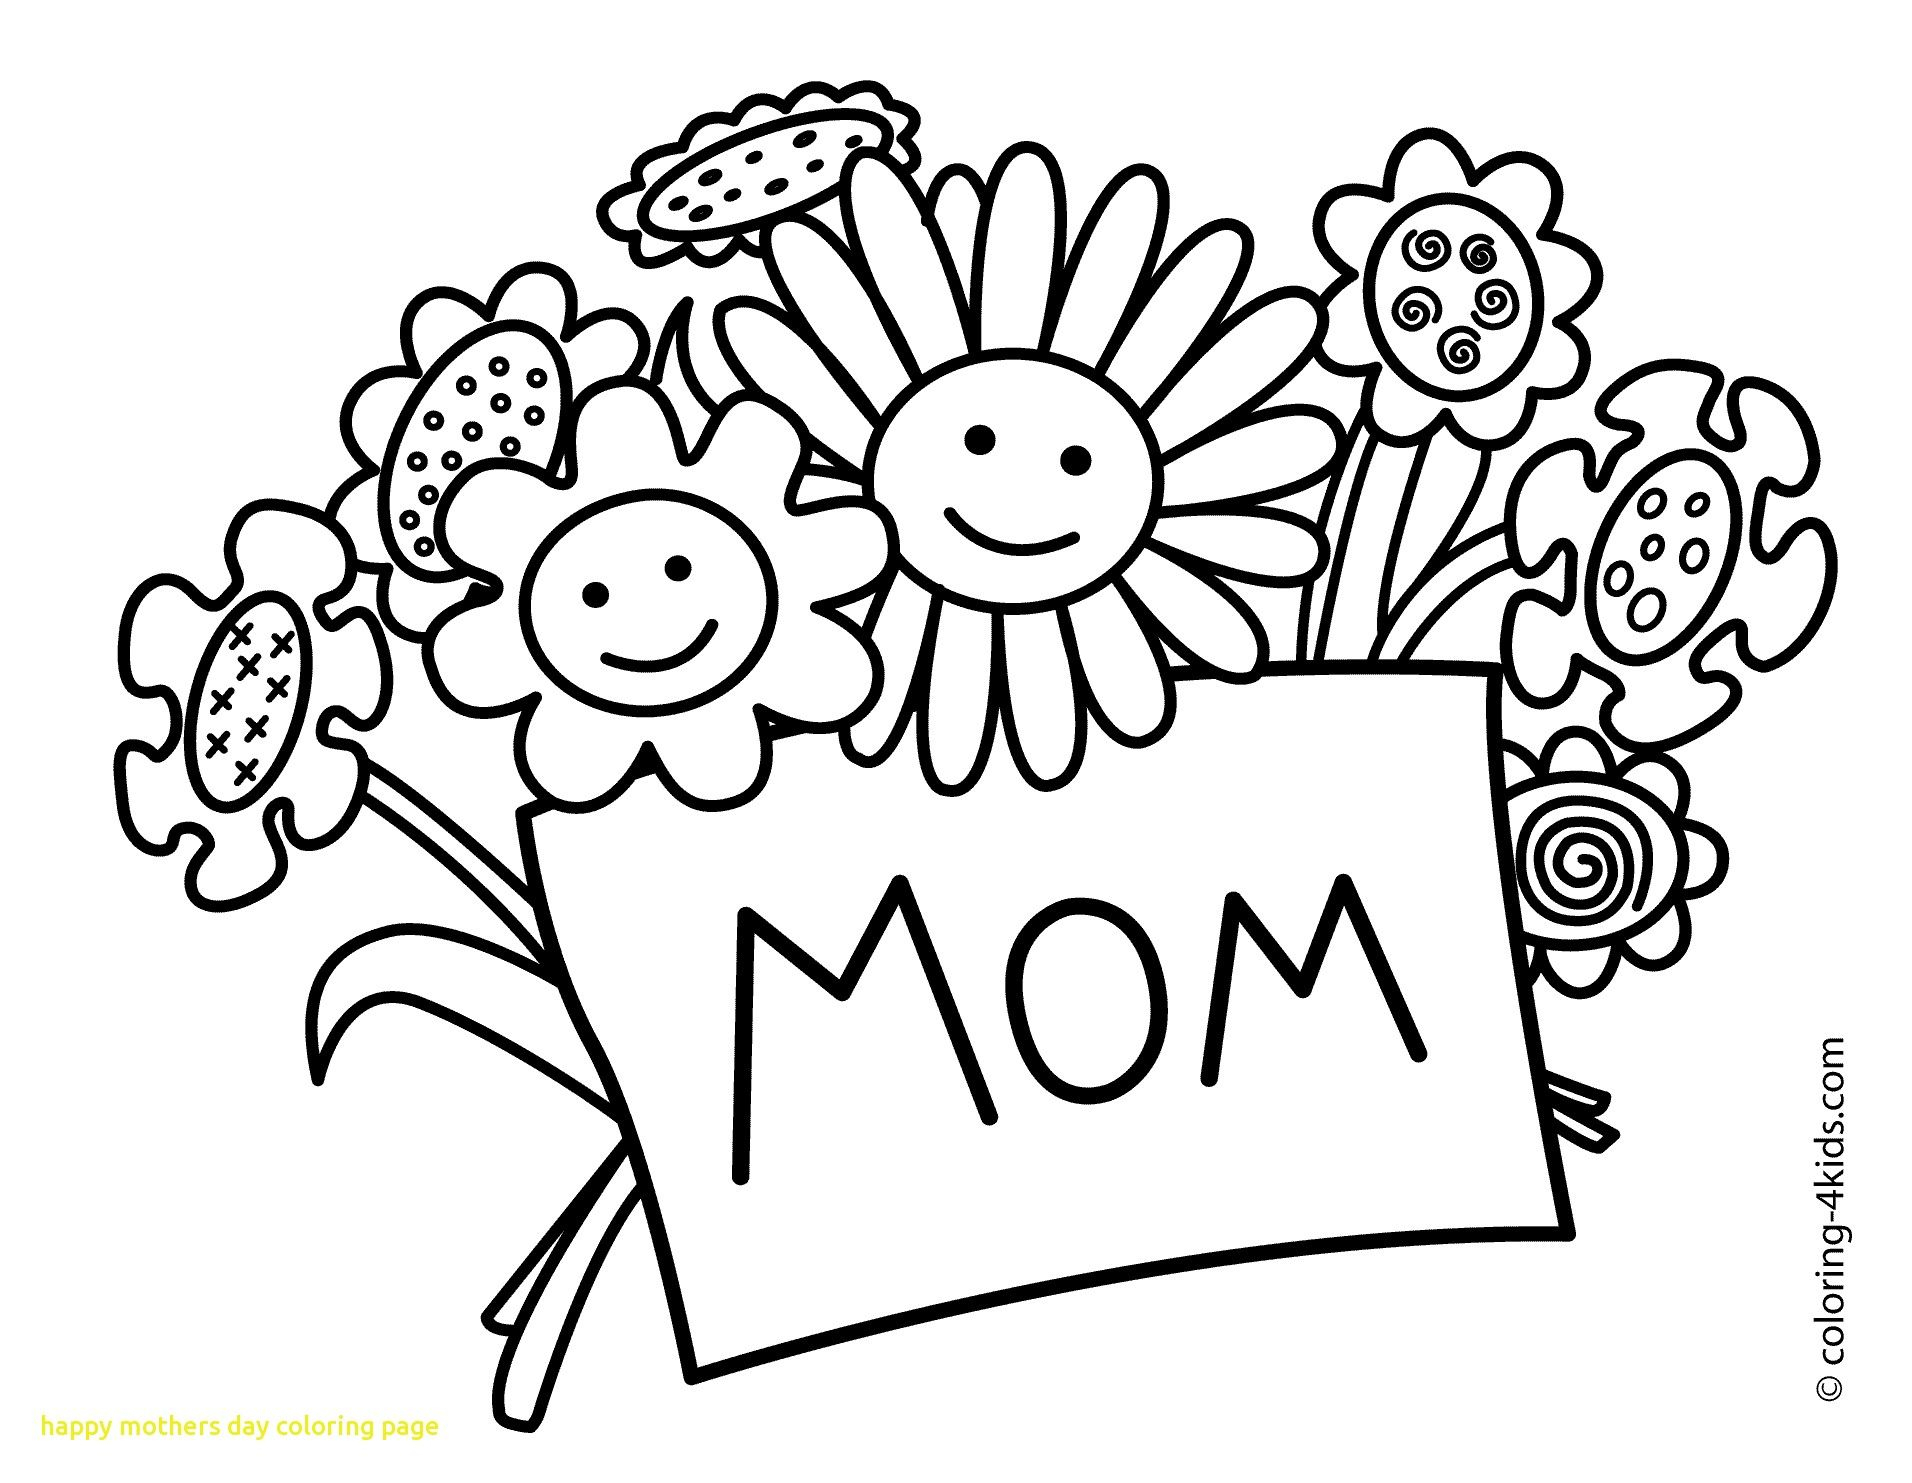 Mothers Day Coloring Pages Kids Download 2a - Free For Children